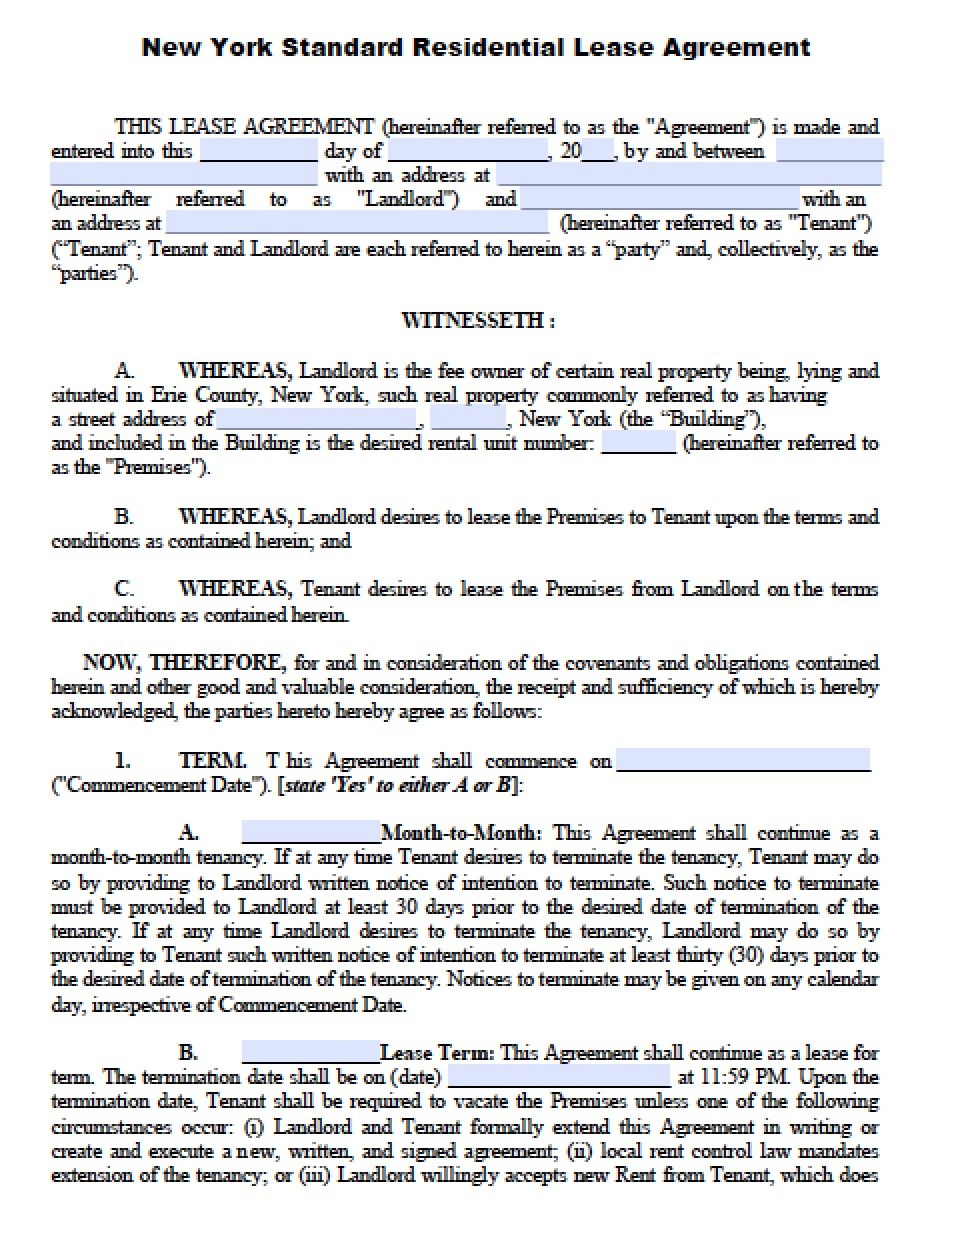 Free New York Standard Residential Lease Agreement Template